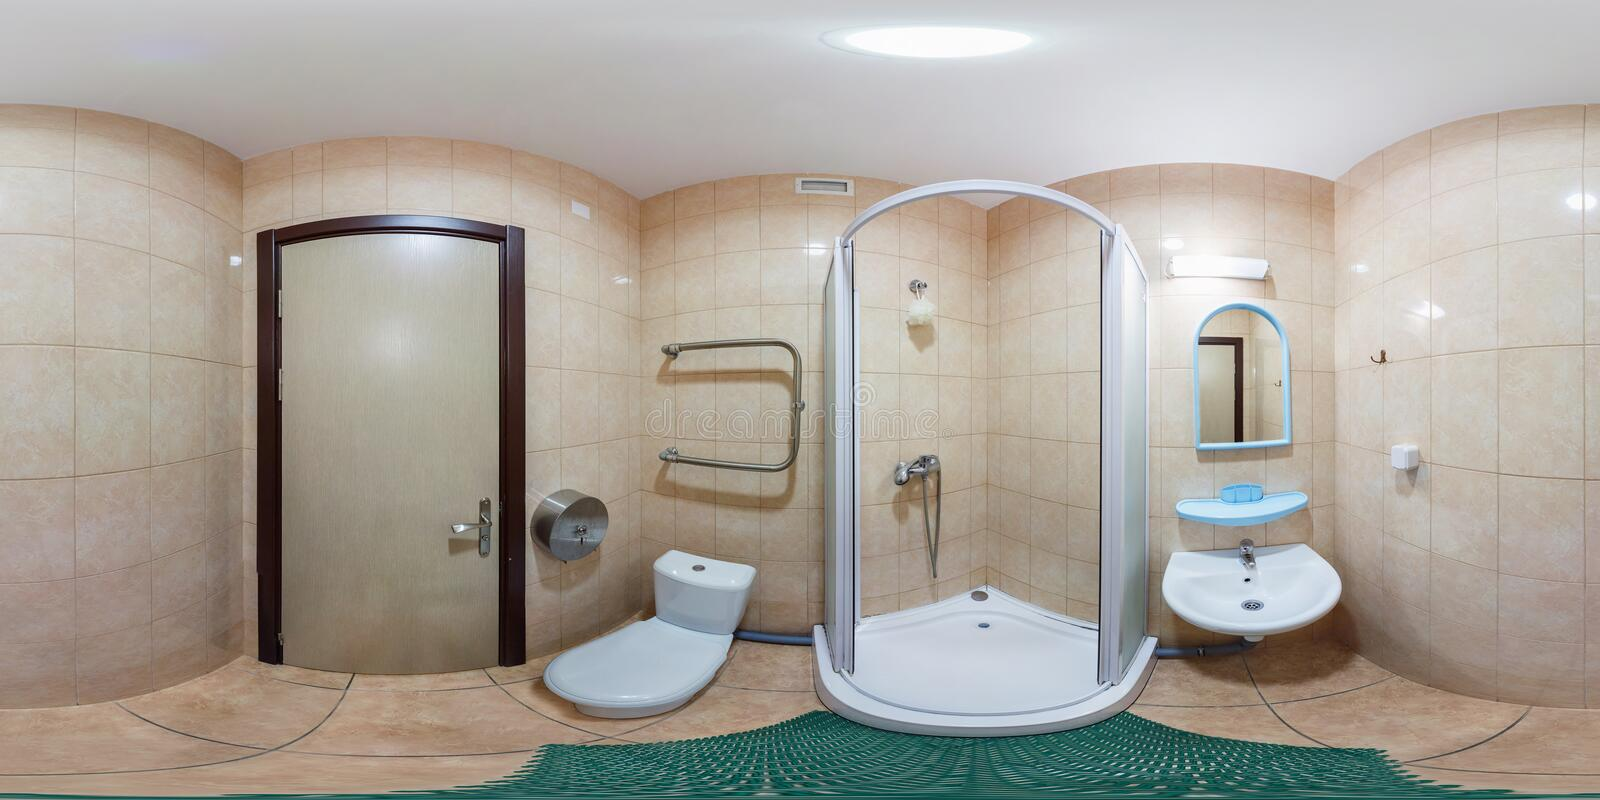 Full seamless 360 degree angle panorama Inside of the interior of empty white bathroom in minimalistic style in equirectangular stock illustration